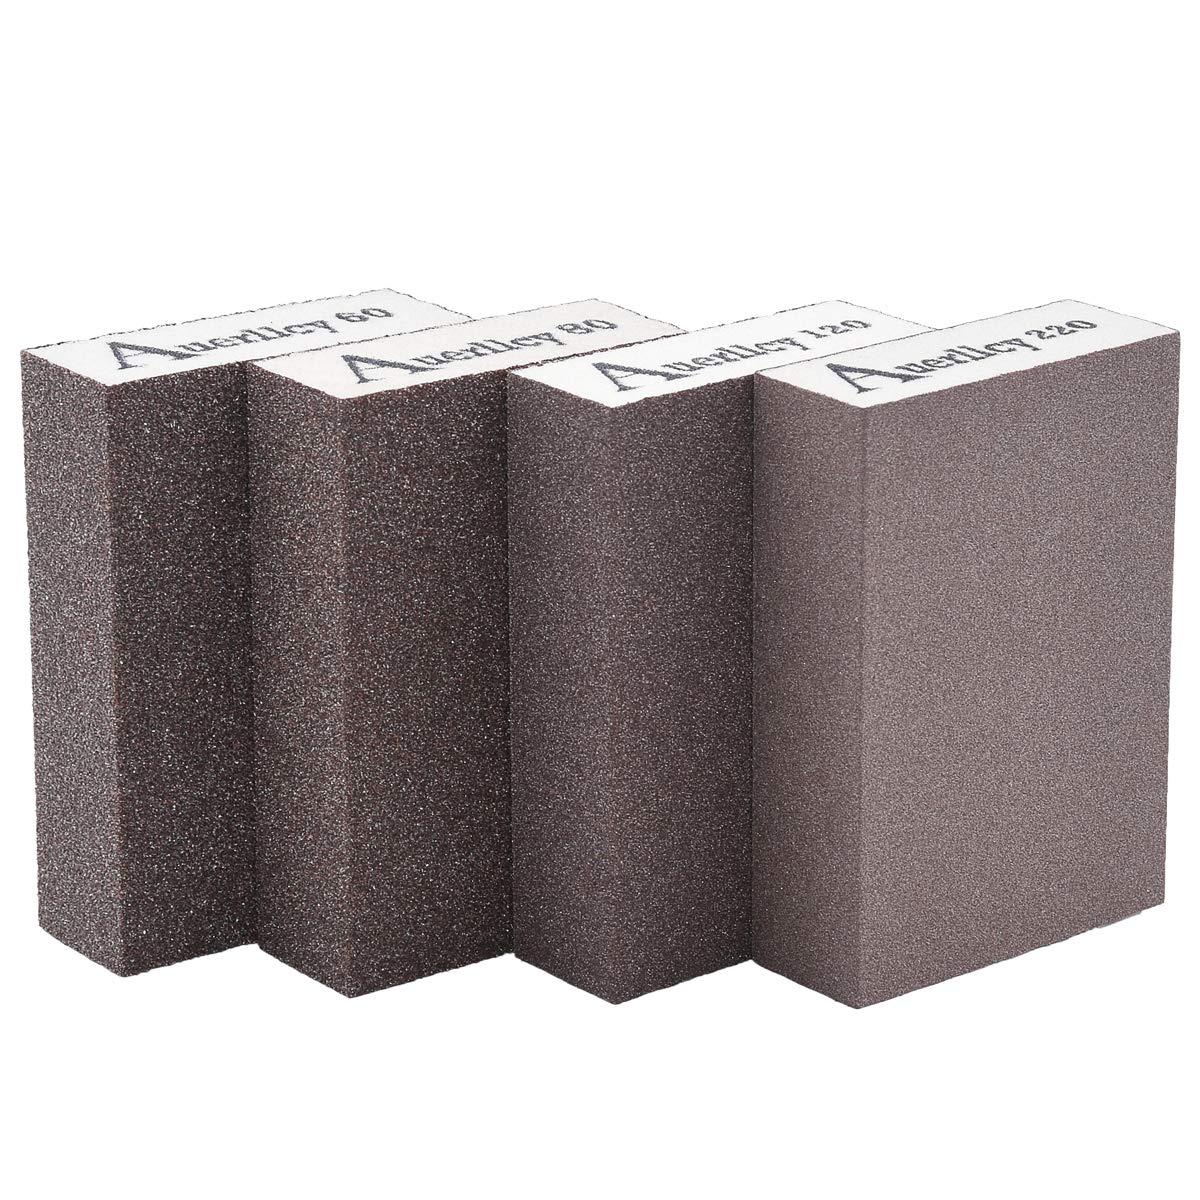 Sanding Sponge,Coarse/Medium/Fine/Superfine 4 Different Specifications Sanding Blocks Assortment,Washable and Reusable.